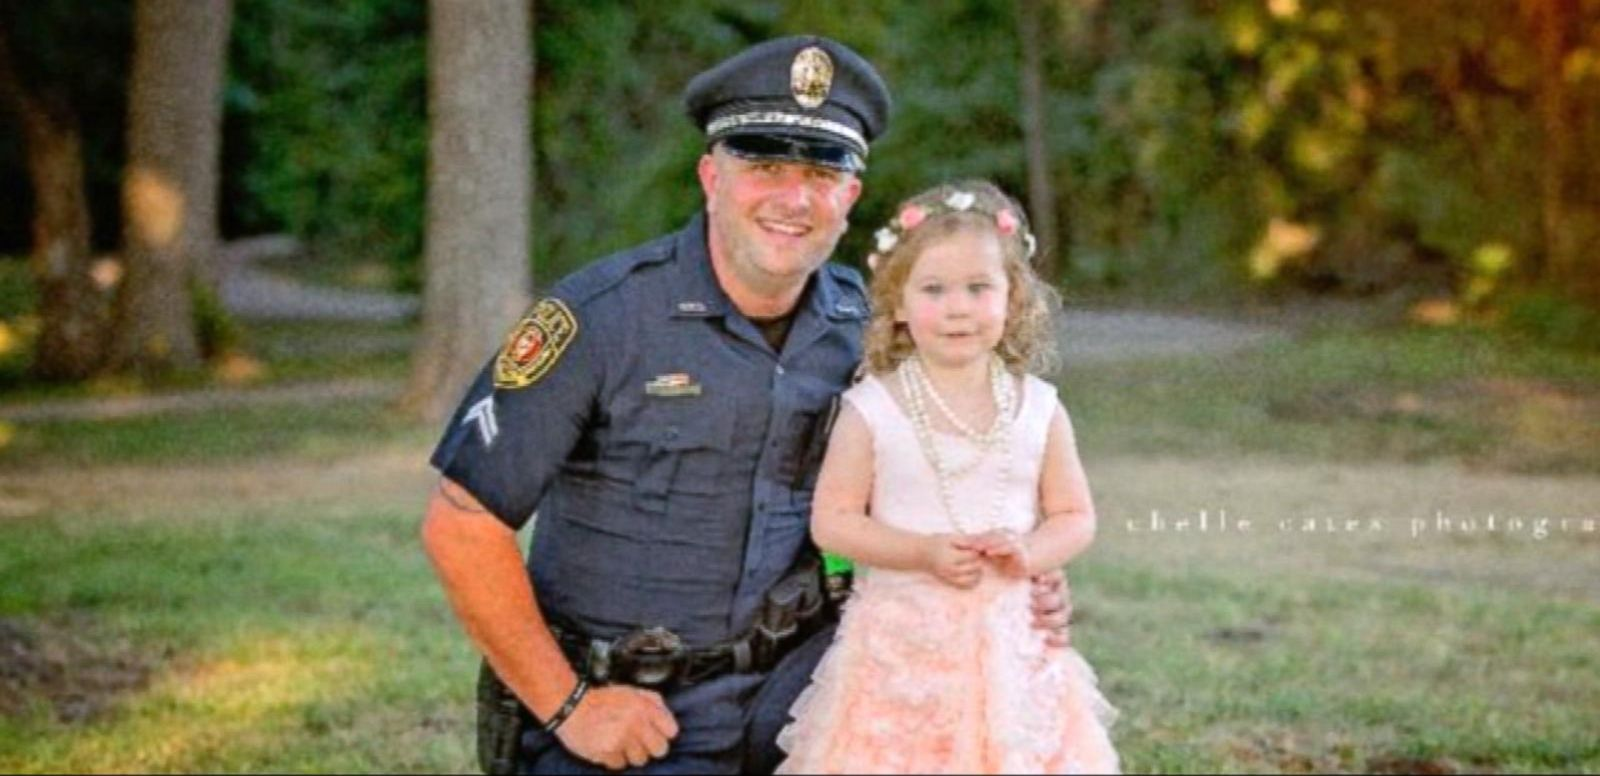 VIDEO: Little Girl's Tea Party for Her Hero in Blue